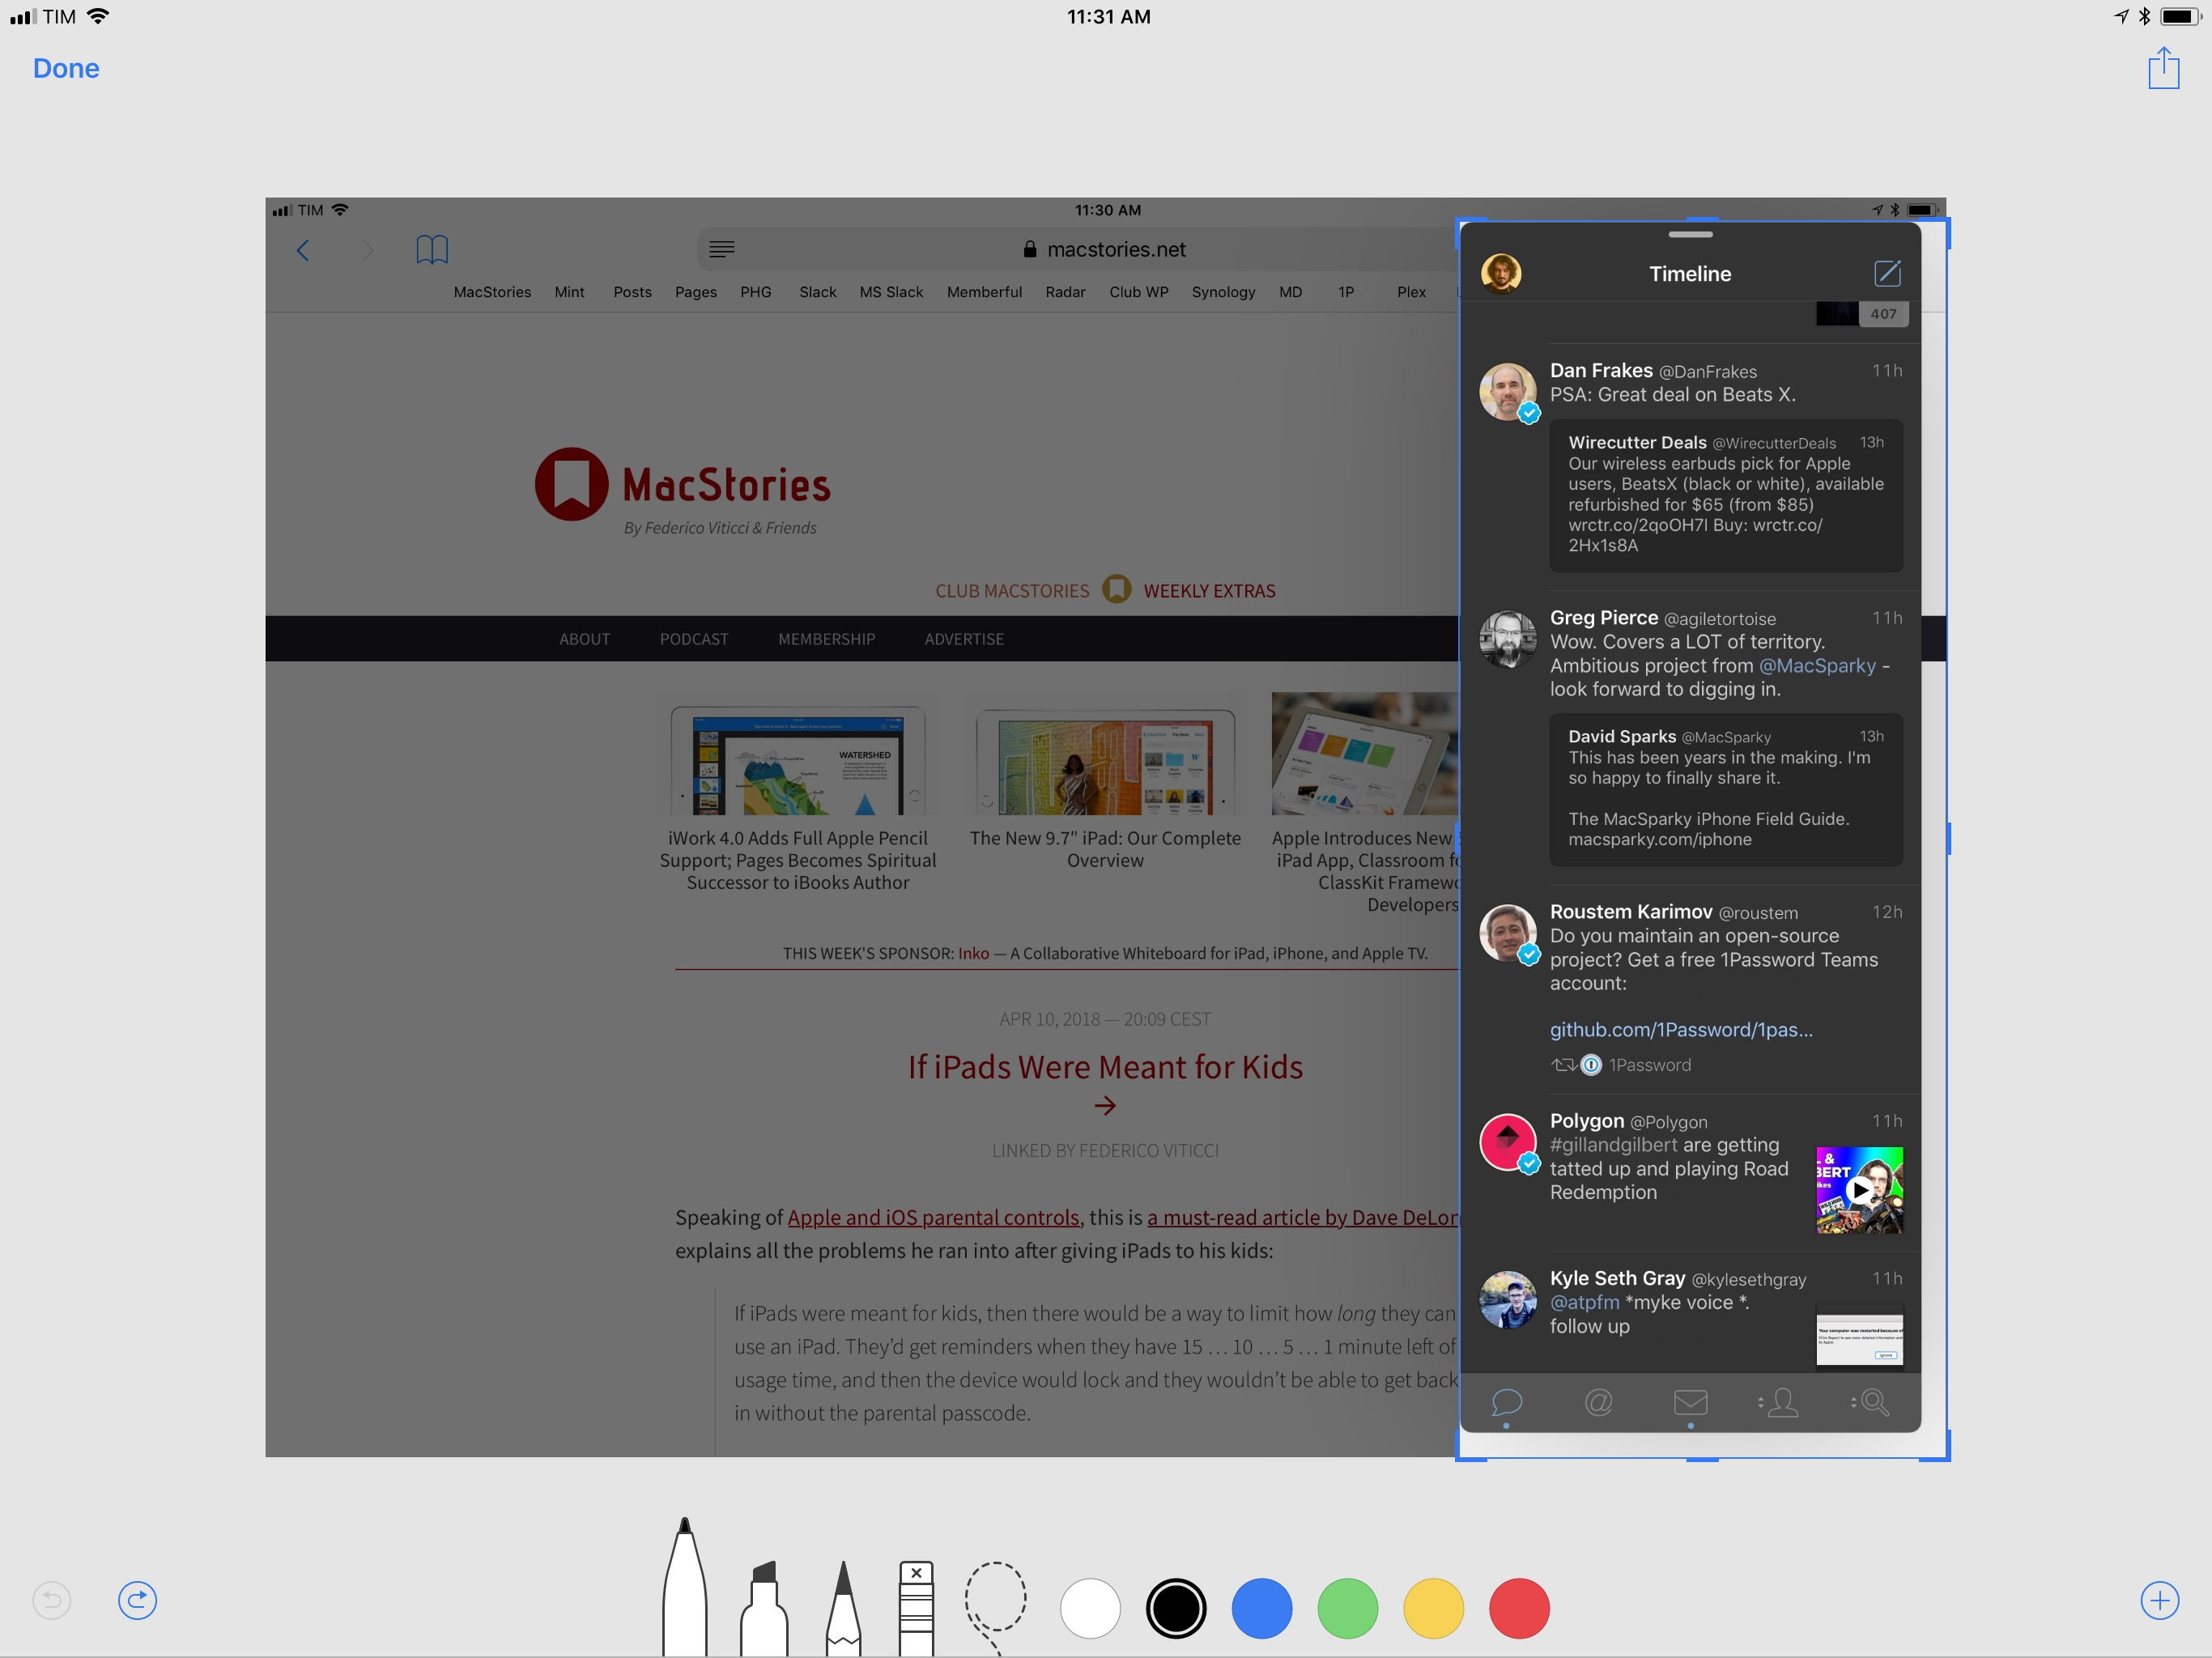 11 Tips for Working on the iPad - MacStories